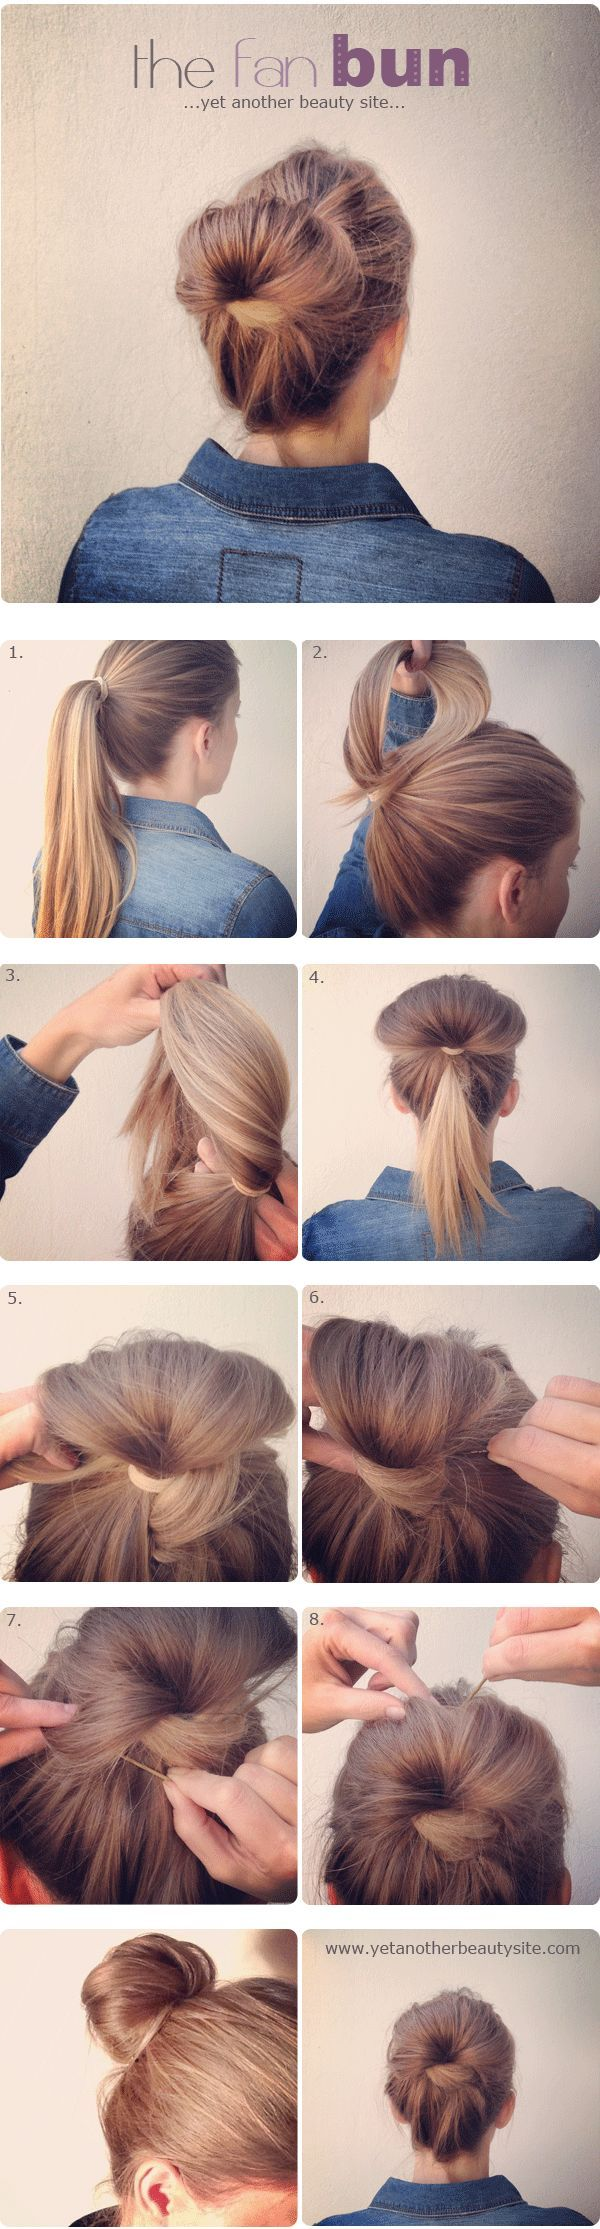 This is by FAR my favorite, quick & easy up-do! Been doing this look for months now, only higher up on my head... looks totally cute with a flower pin accent!